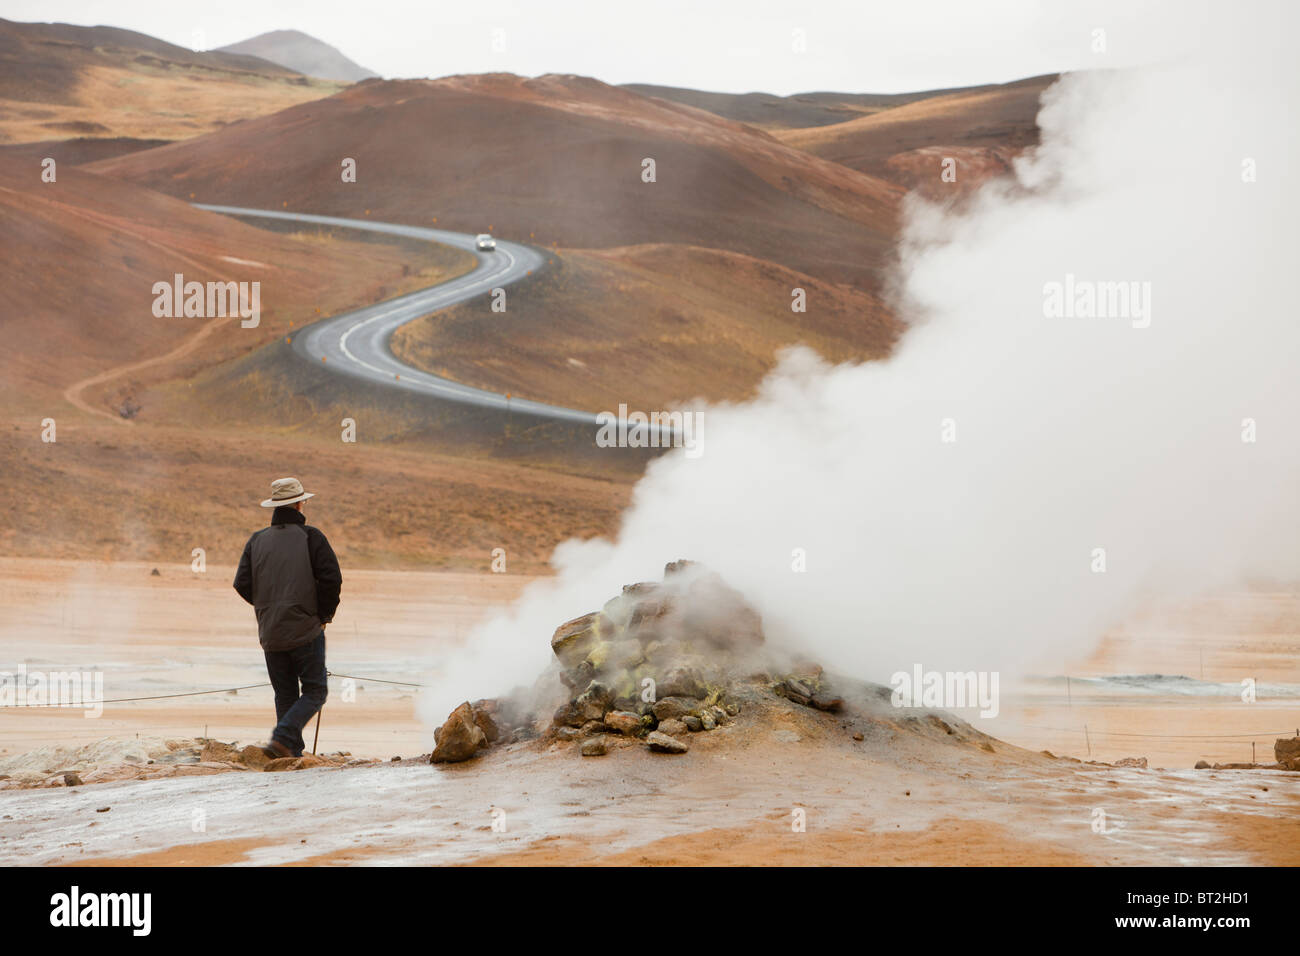 Fumaroles emitting steam in the geothermal area of Hverir near Myvatn, northern Iceland - Stock Image